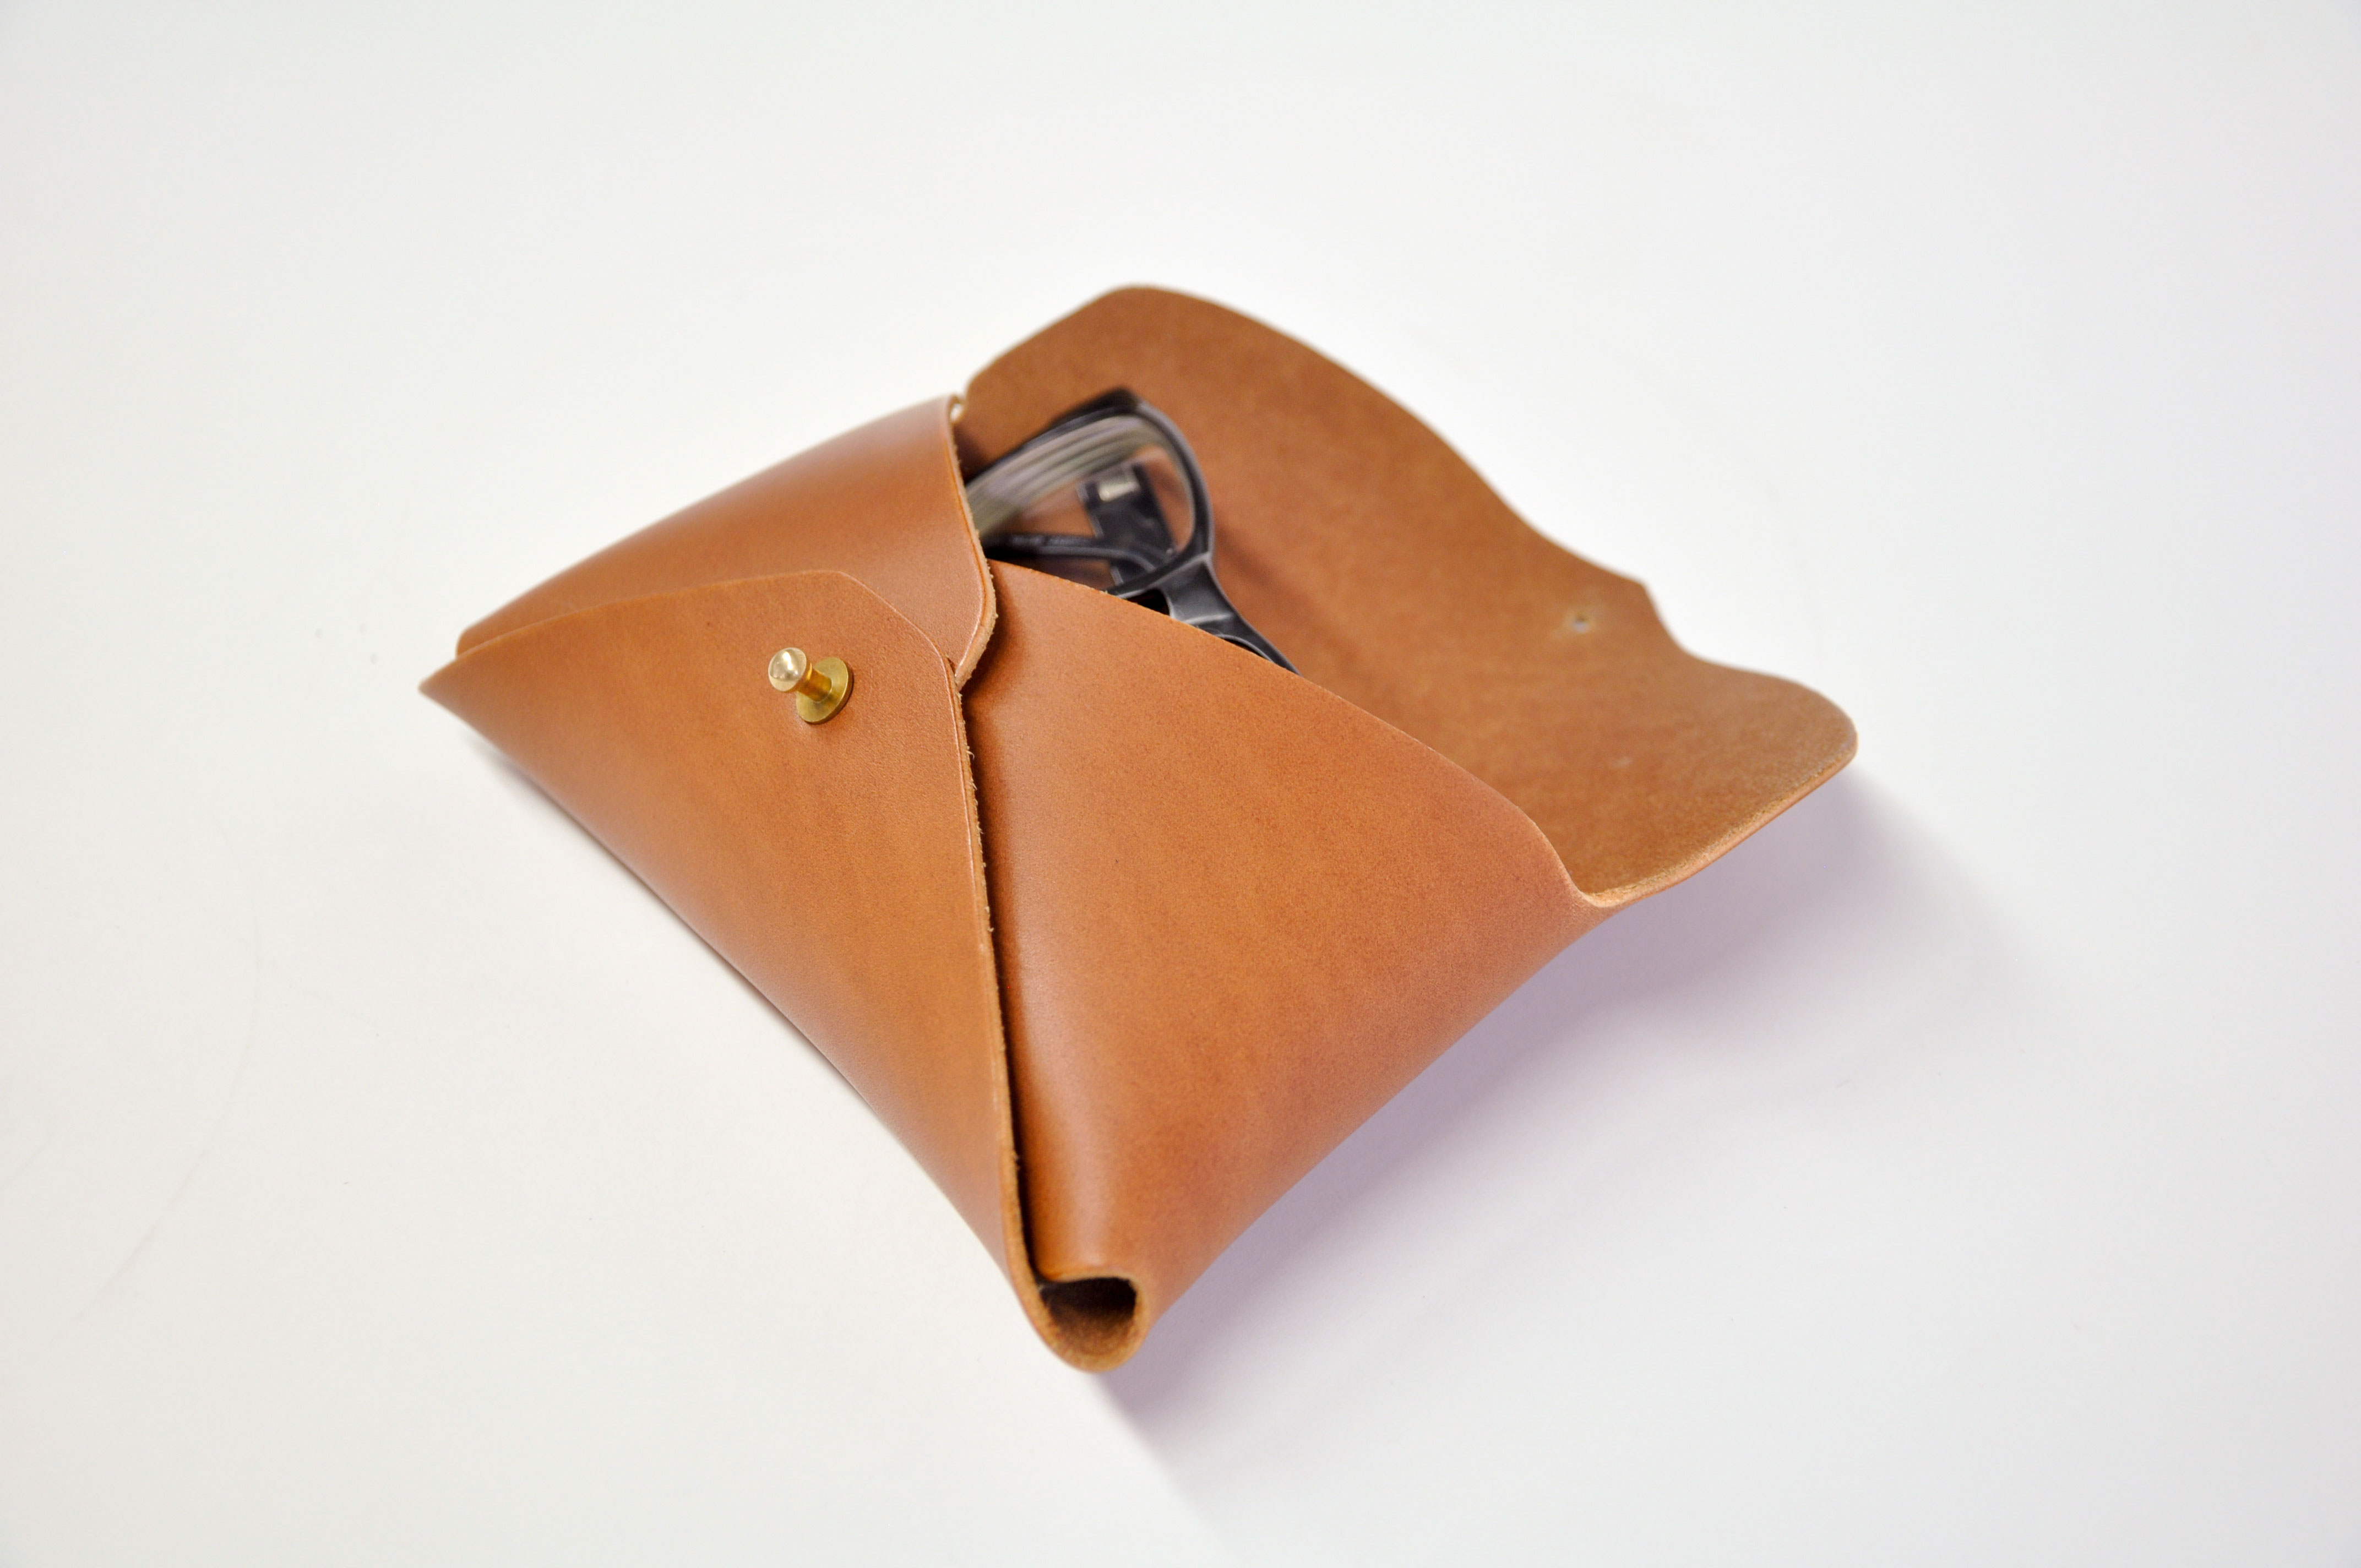 A leather glasses case with a pair of glasses inside.